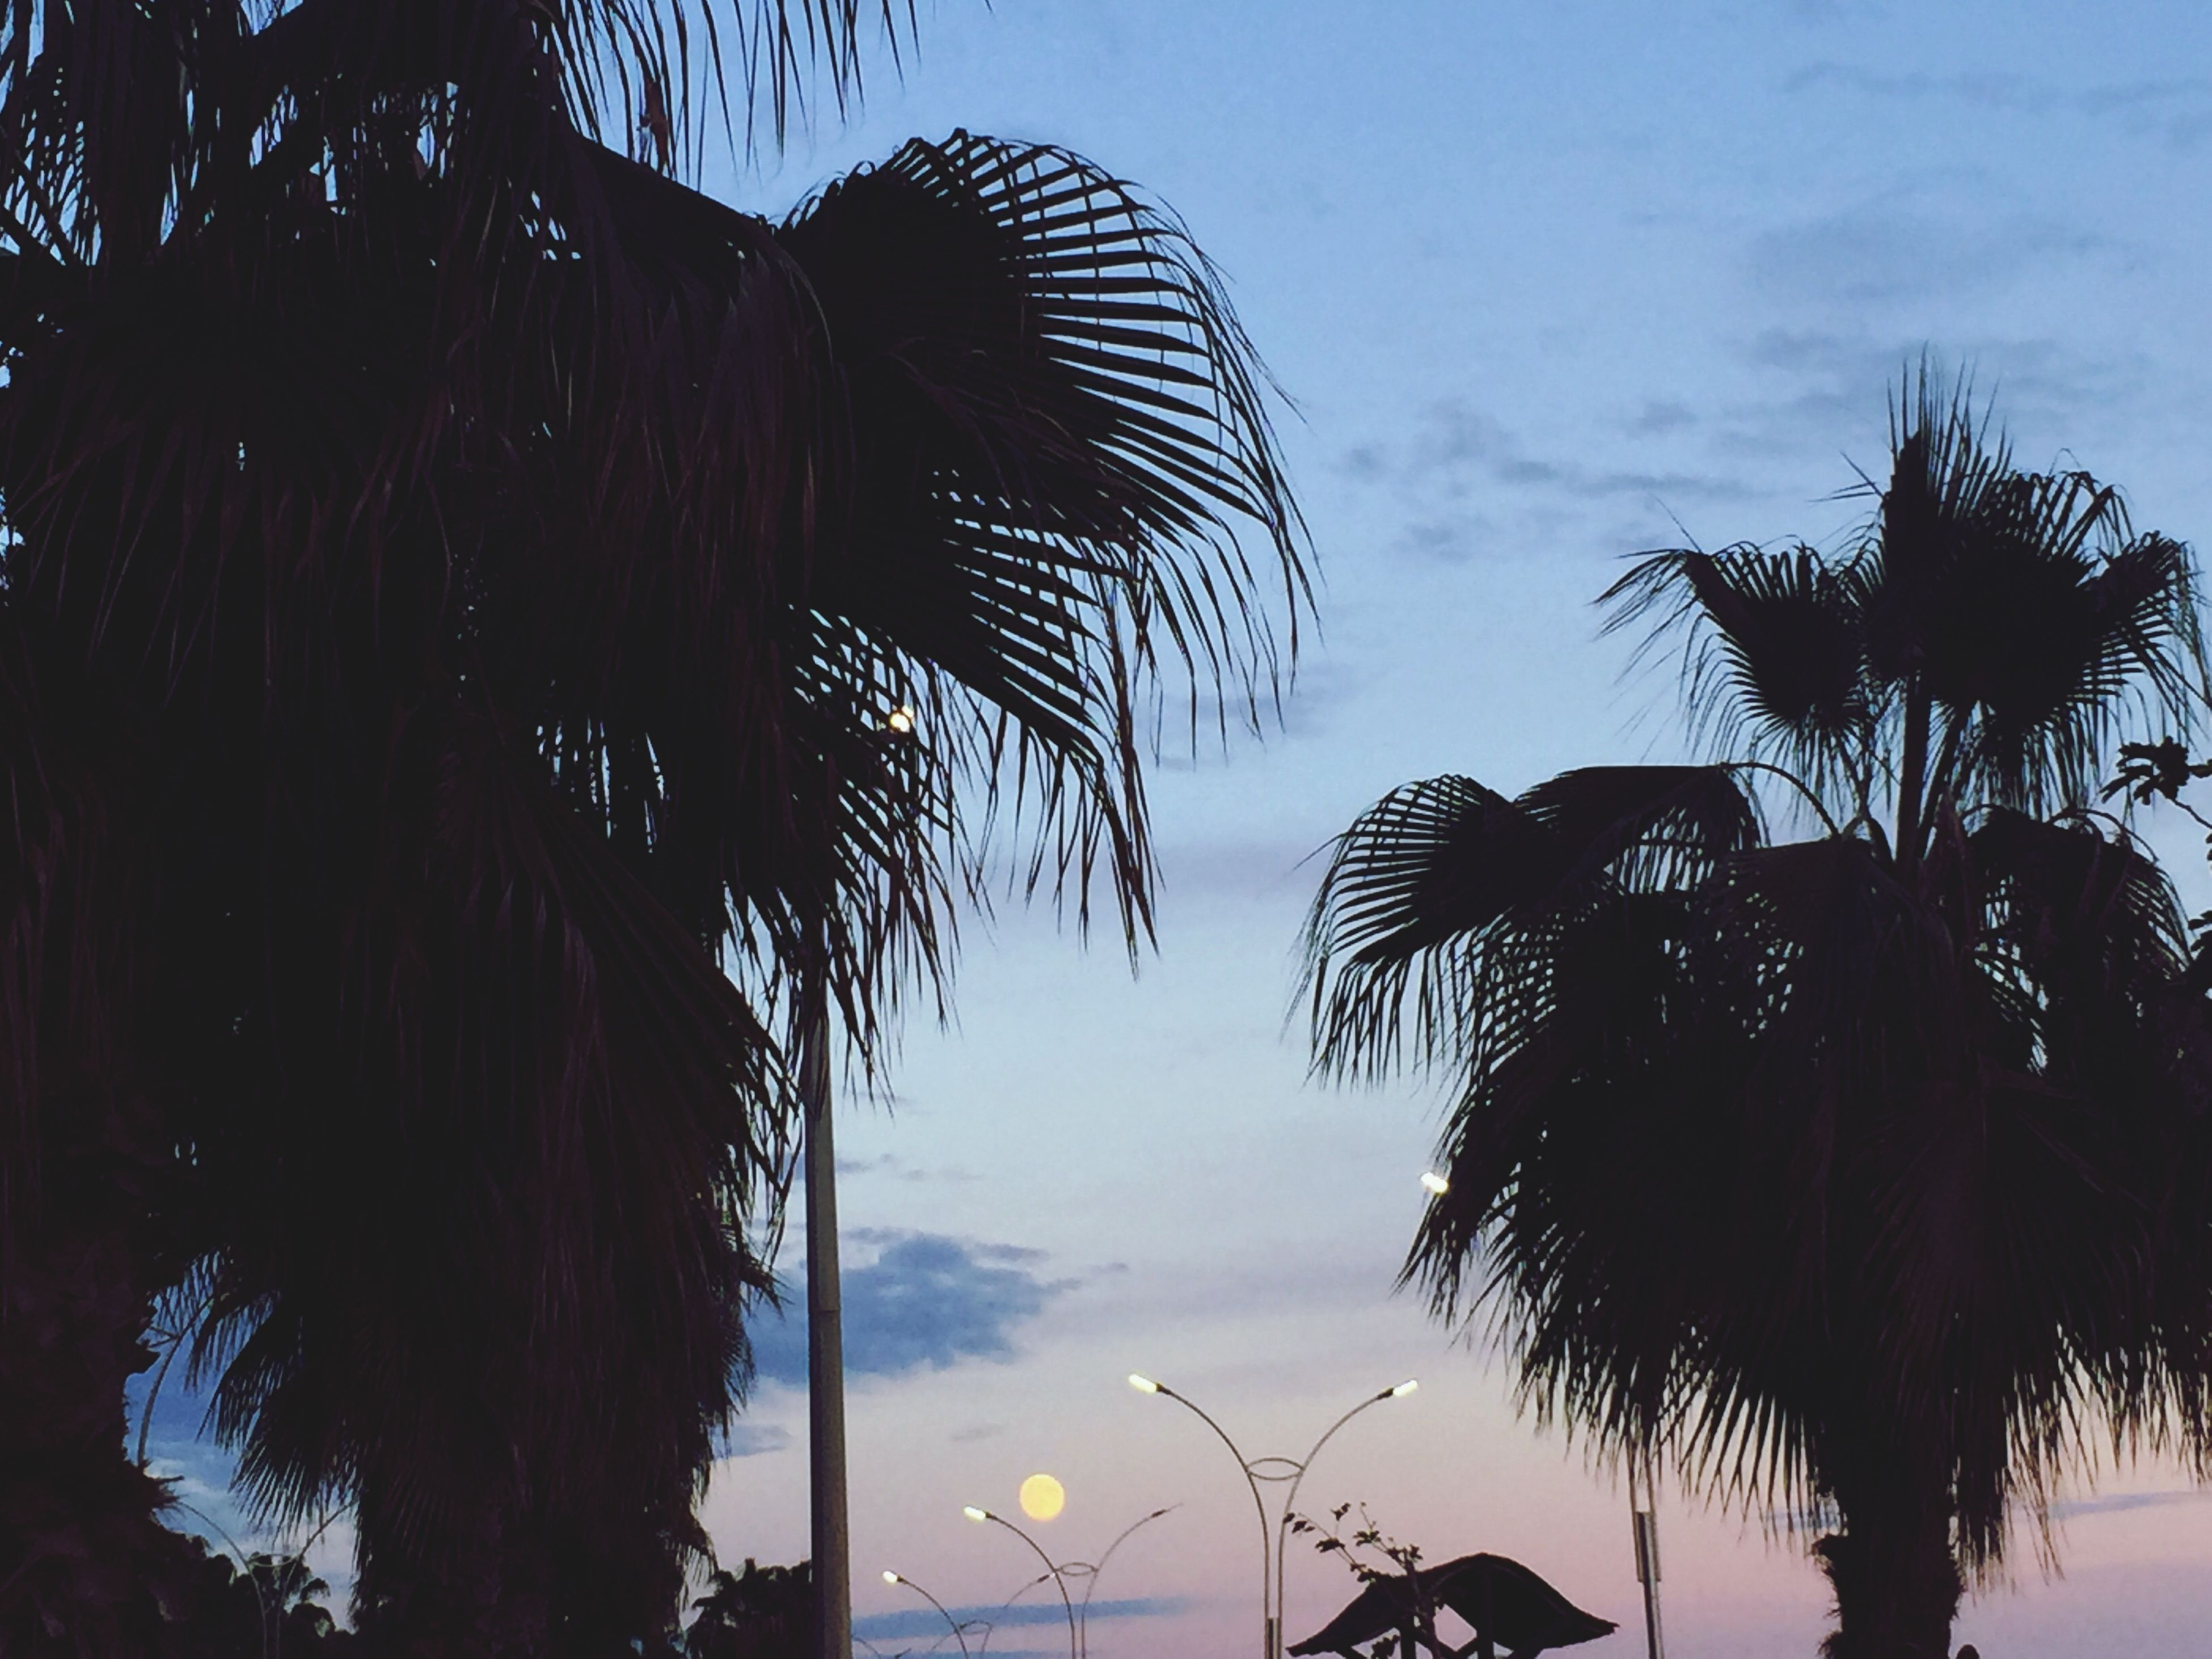 palm tree, low angle view, sky, tree, silhouette, sunset, cloud - sky, growth, tranquility, nature, beauty in nature, dusk, cloud, scenics, palm leaf, coconut palm tree, tranquil scene, tall - high, outdoors, tree trunk